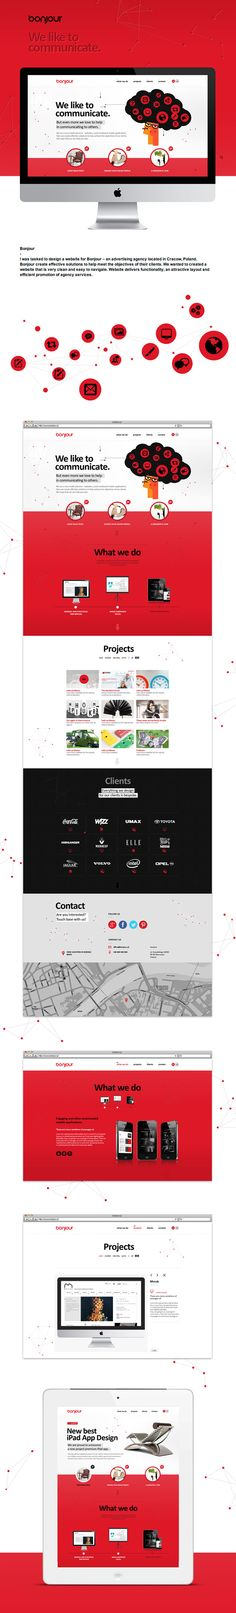 """Bonjour by Renata Cyganczuk, via Behance *** """" Bonjour create effective solutions to help meet the objectives of their clients. We wanted to created a website that is very clean and easy to navigate. Website delivers functionality, an attractive layout and efficient promotion of agency services. """""""